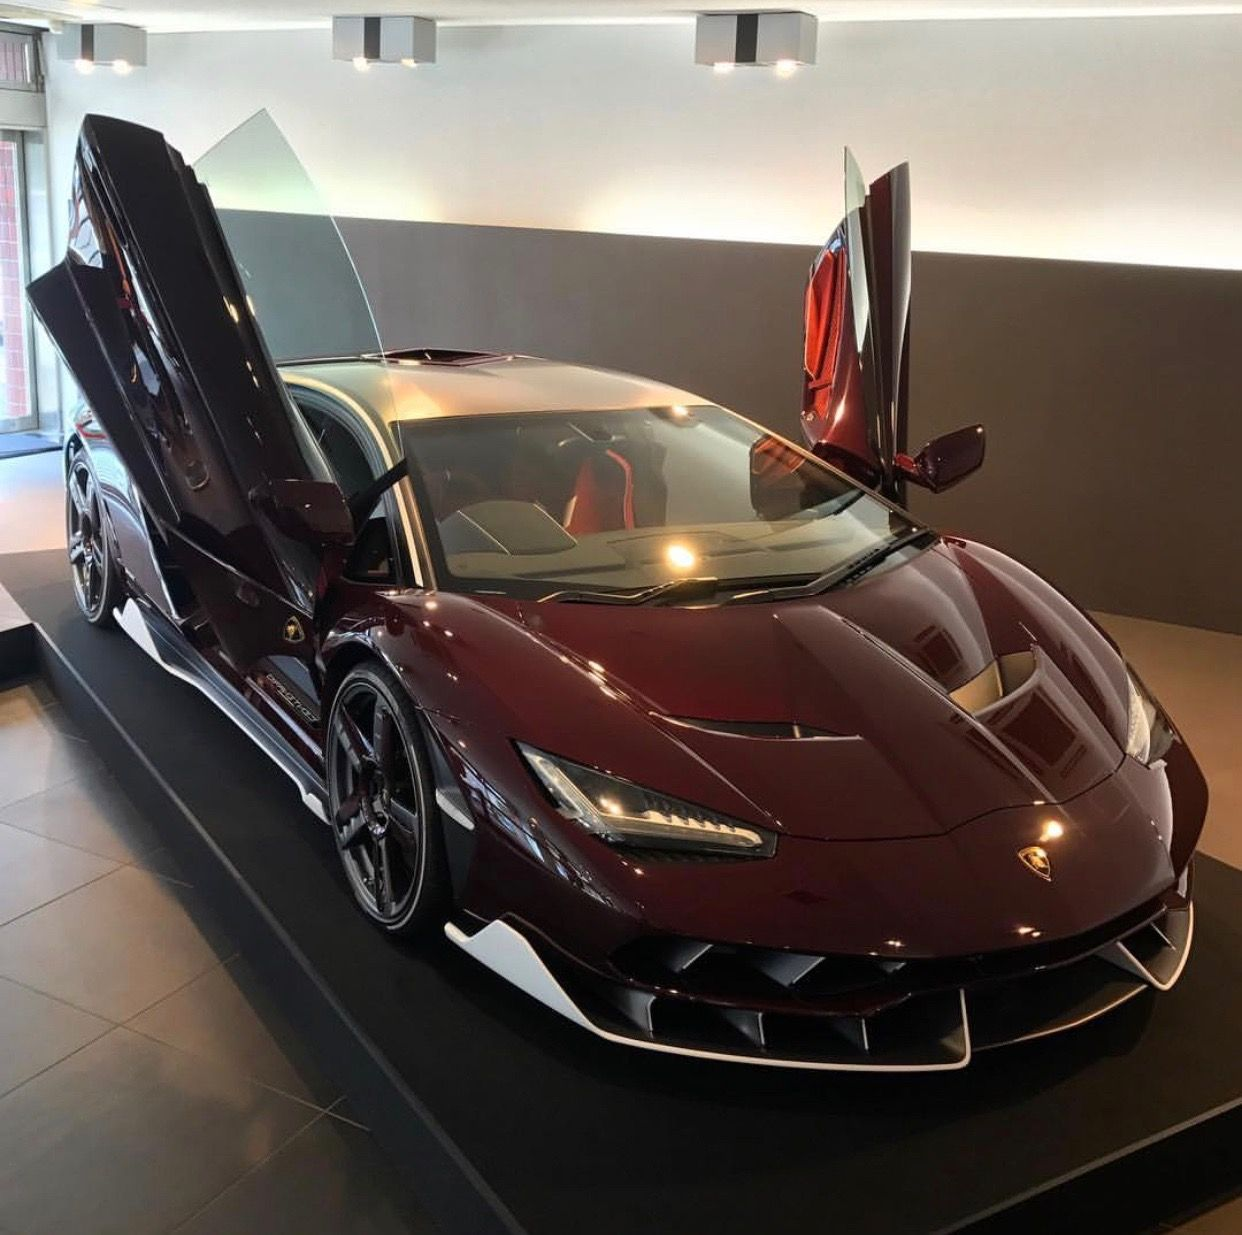 Lamborghini Centenario Coupe Made Out Of Exposed Red Carbon Fiber W Bianco Accents And Polished Wheels W Red Carb Futuristic Cars Lamborghini Cars Dream Cars